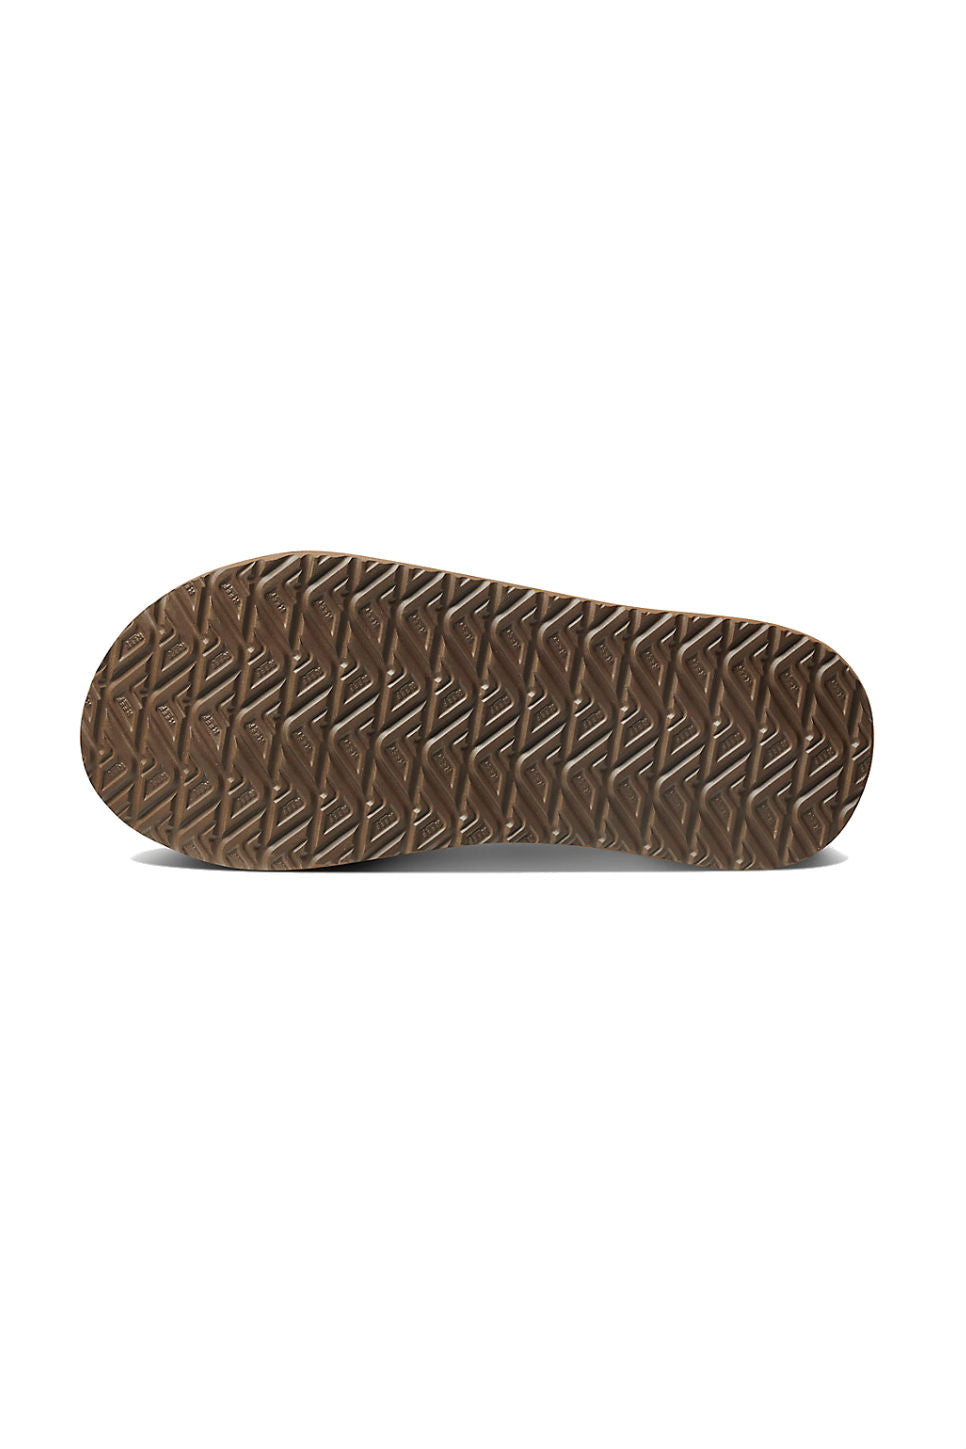 Reef - Cushion Bounce Phantom LE - Black/Brown - Bottom